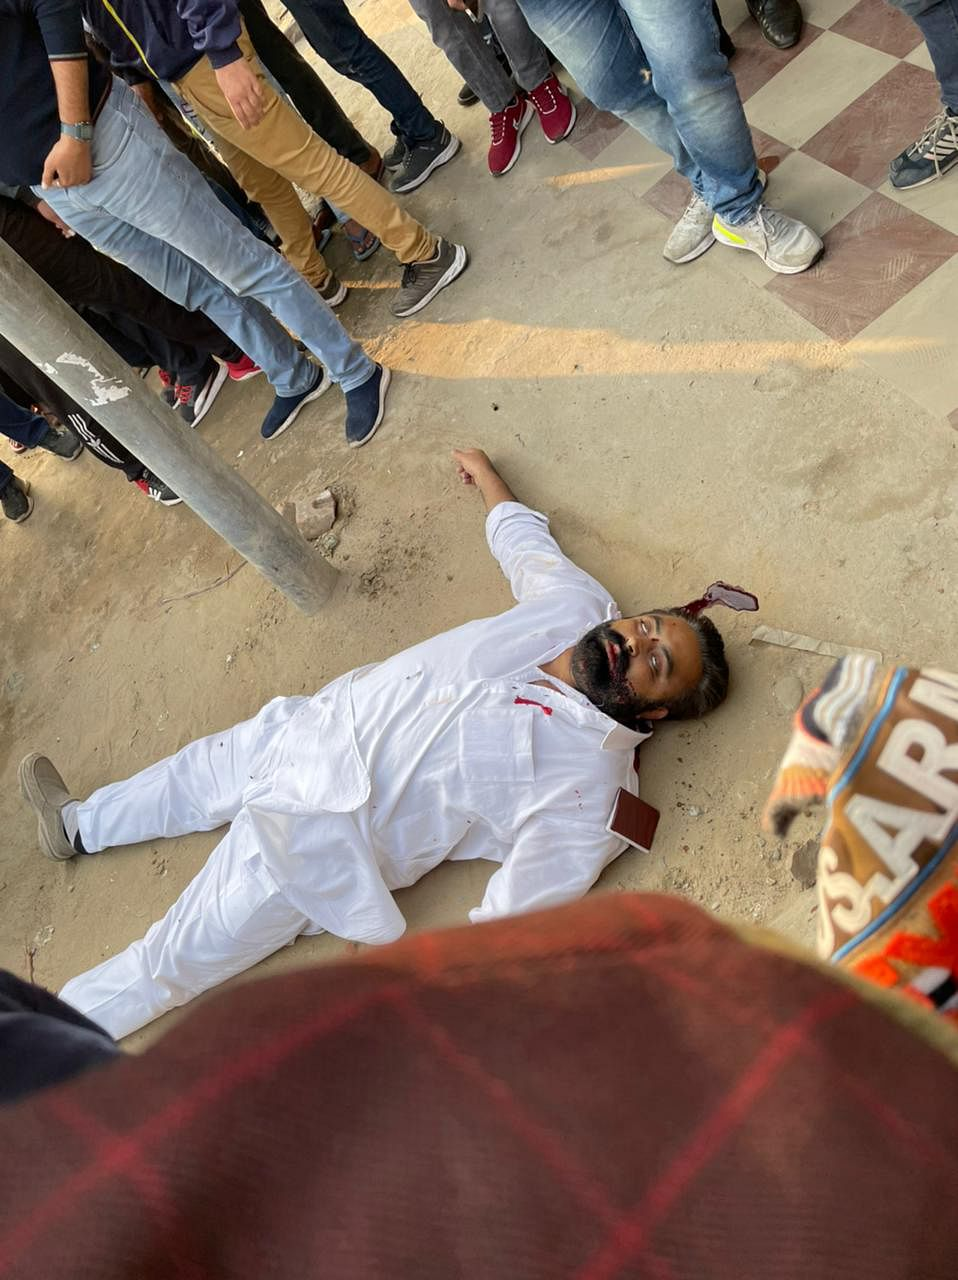 youth-congress-president-shot-dead-in-faridkot-panic-atmosphere